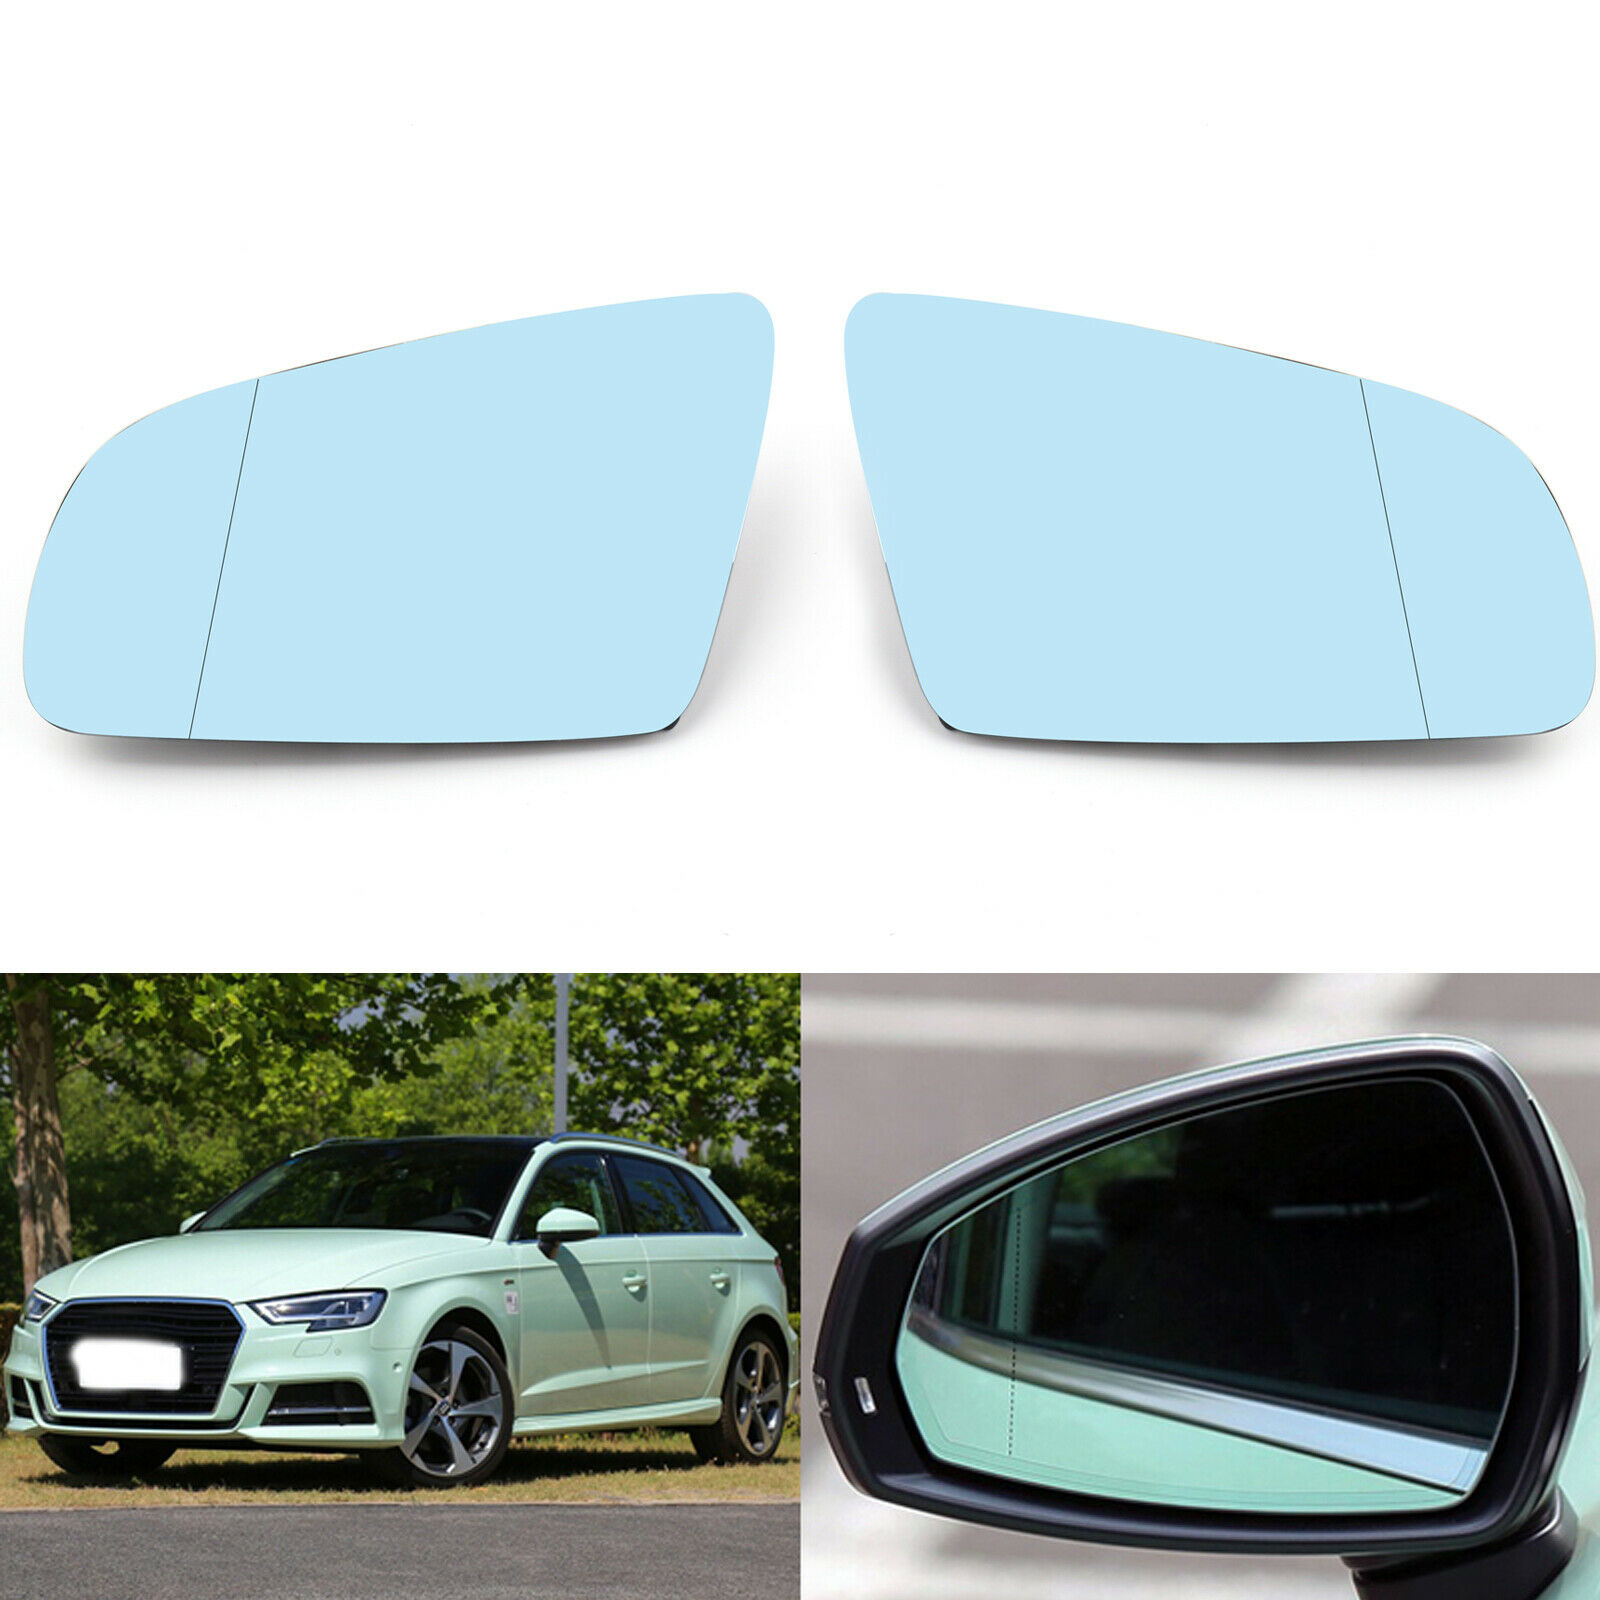 For Mercedes <font><b>Benz</b></font> S-Class CL-Class <font><b>W220</b></font> C215 CL500 <font><b>S500</b></font> 1999 2000 - 2003 Car RearMirror Glass Anti-glare Blue Glass Wing Side image